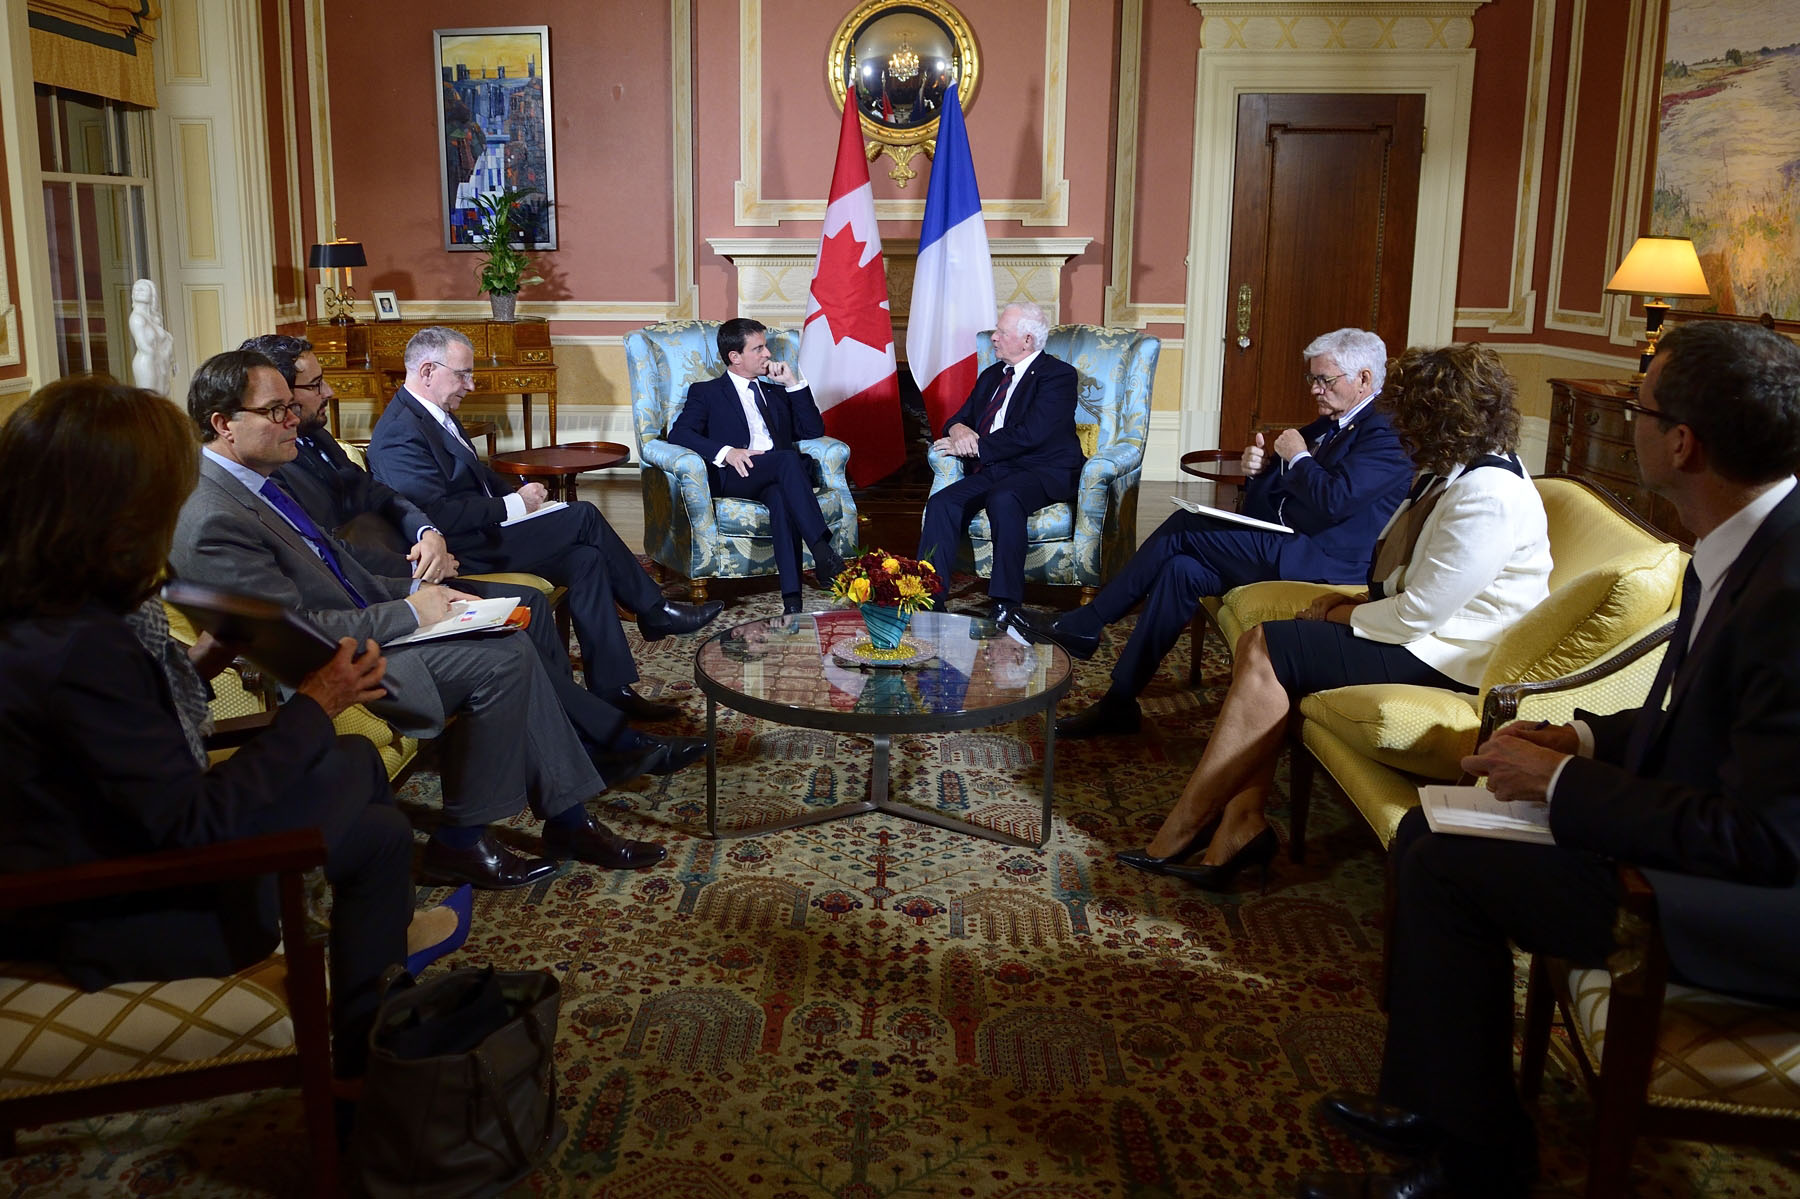 The meeting was held in the Large Drawing Room of Rideau Hall.